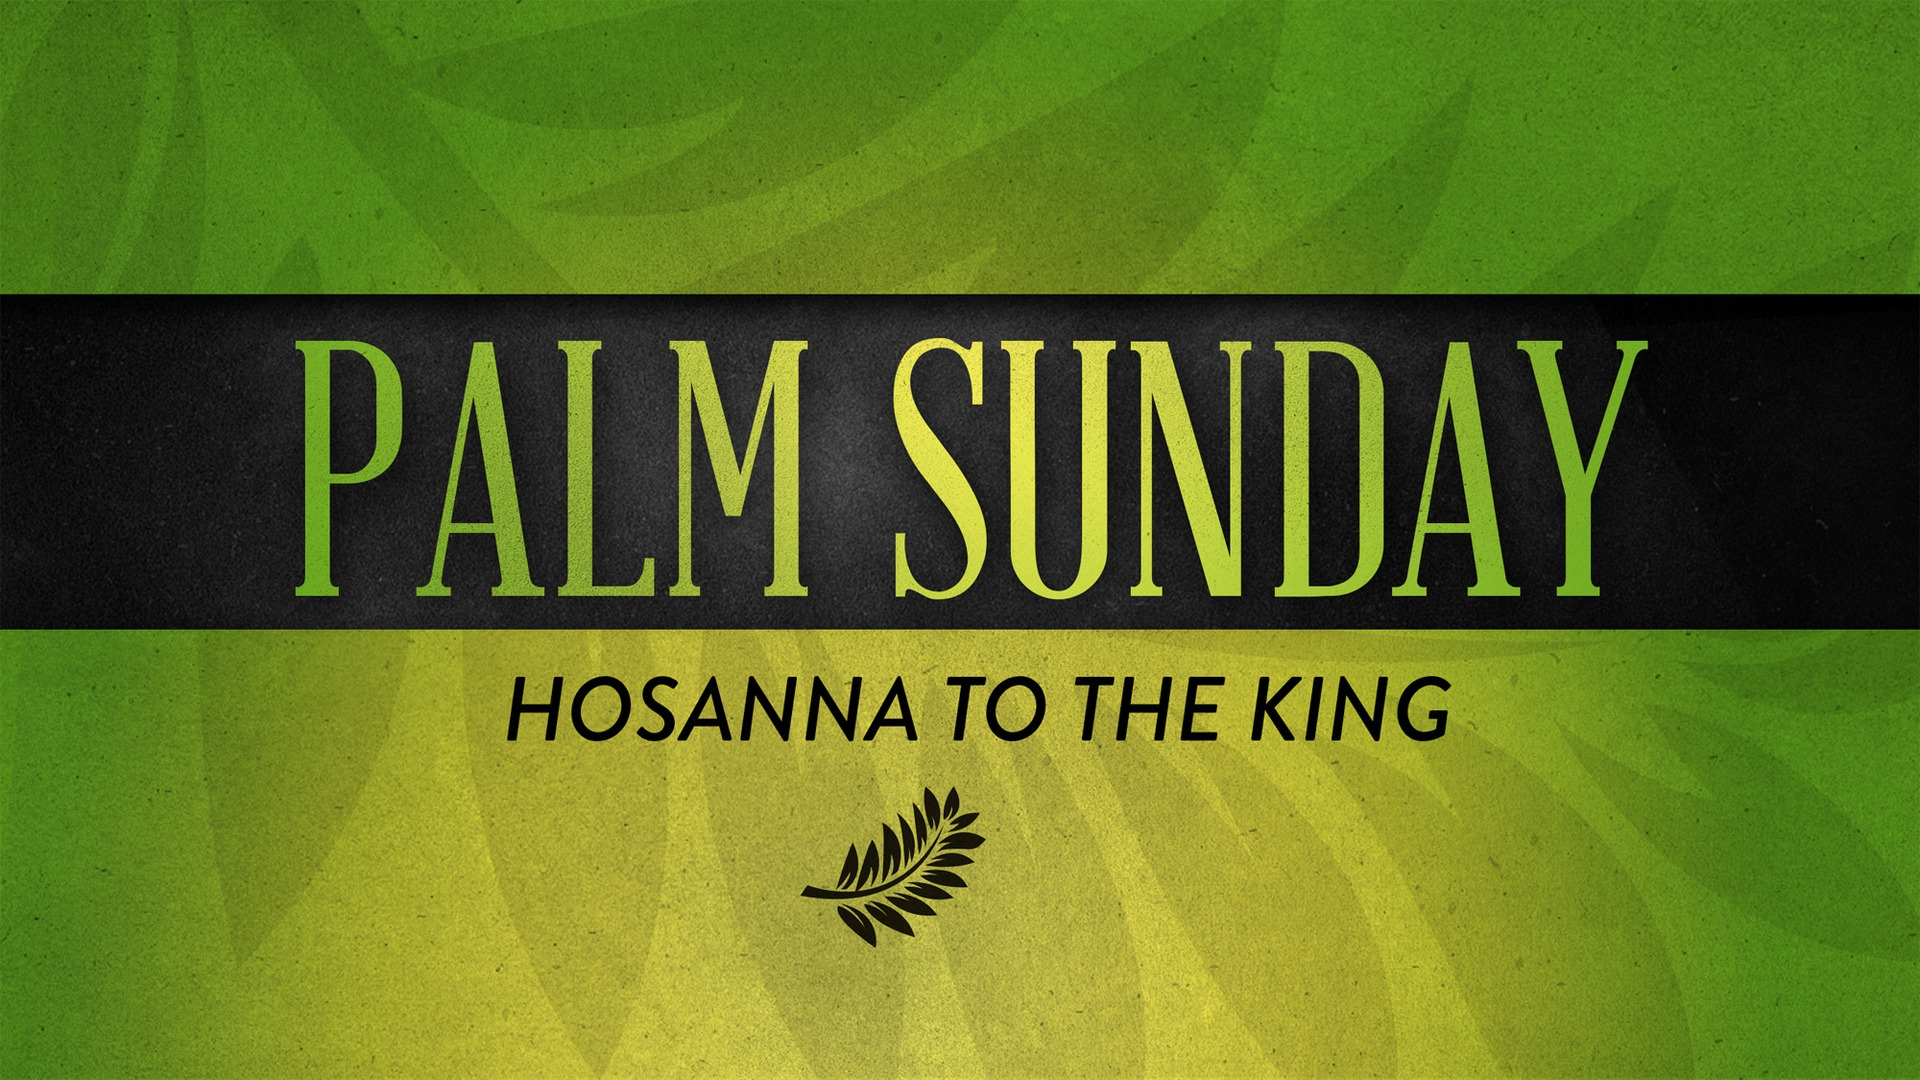 Sunday April 14, 2019 Palm Sunday: Hosanna To The King - Pastor Anthony Cox